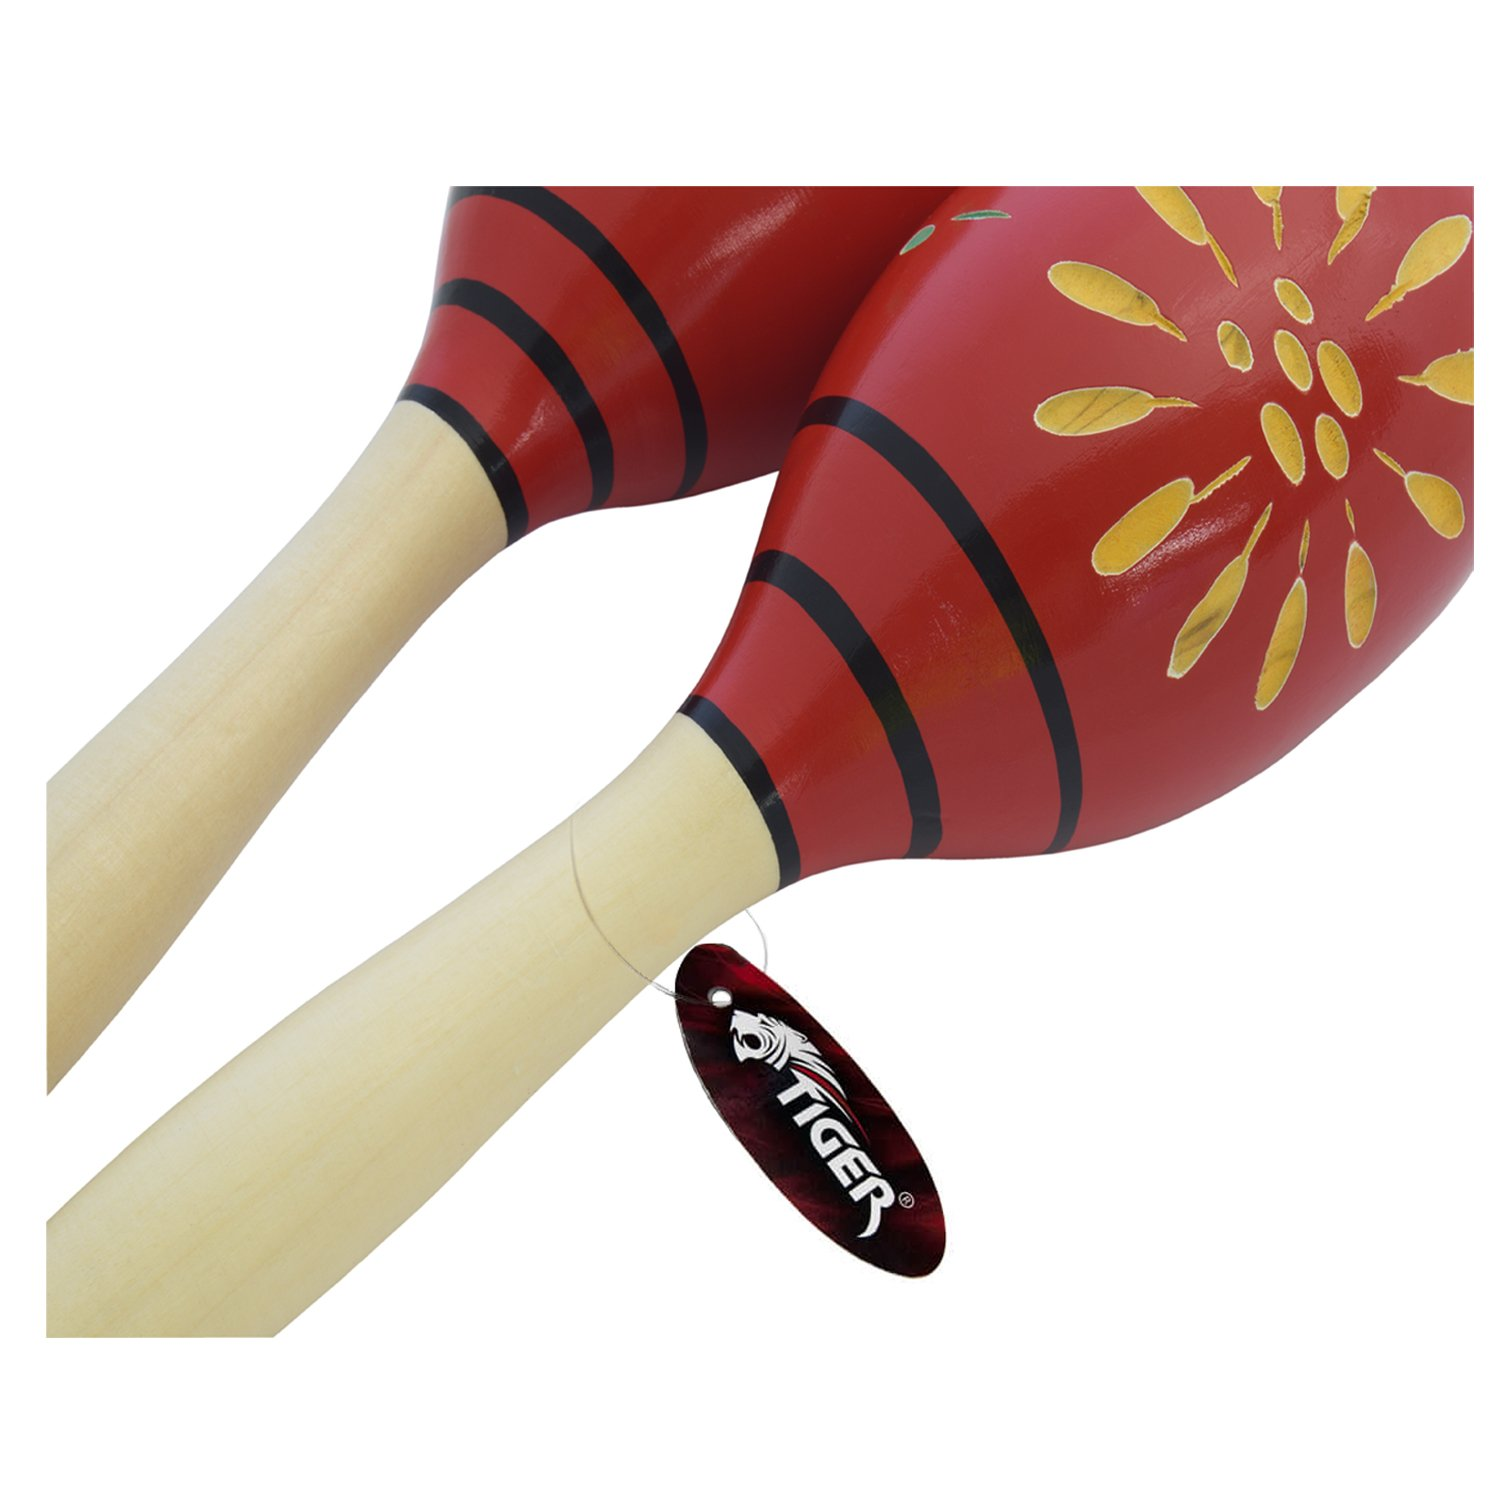 Brilliant Pair Of Wooden Large Maracas Rumba Shakers Rattles Sand Hammer Percussion Instrument Musical Toy For Kid Children Party Games Musical Instruments Sports & Entertainment